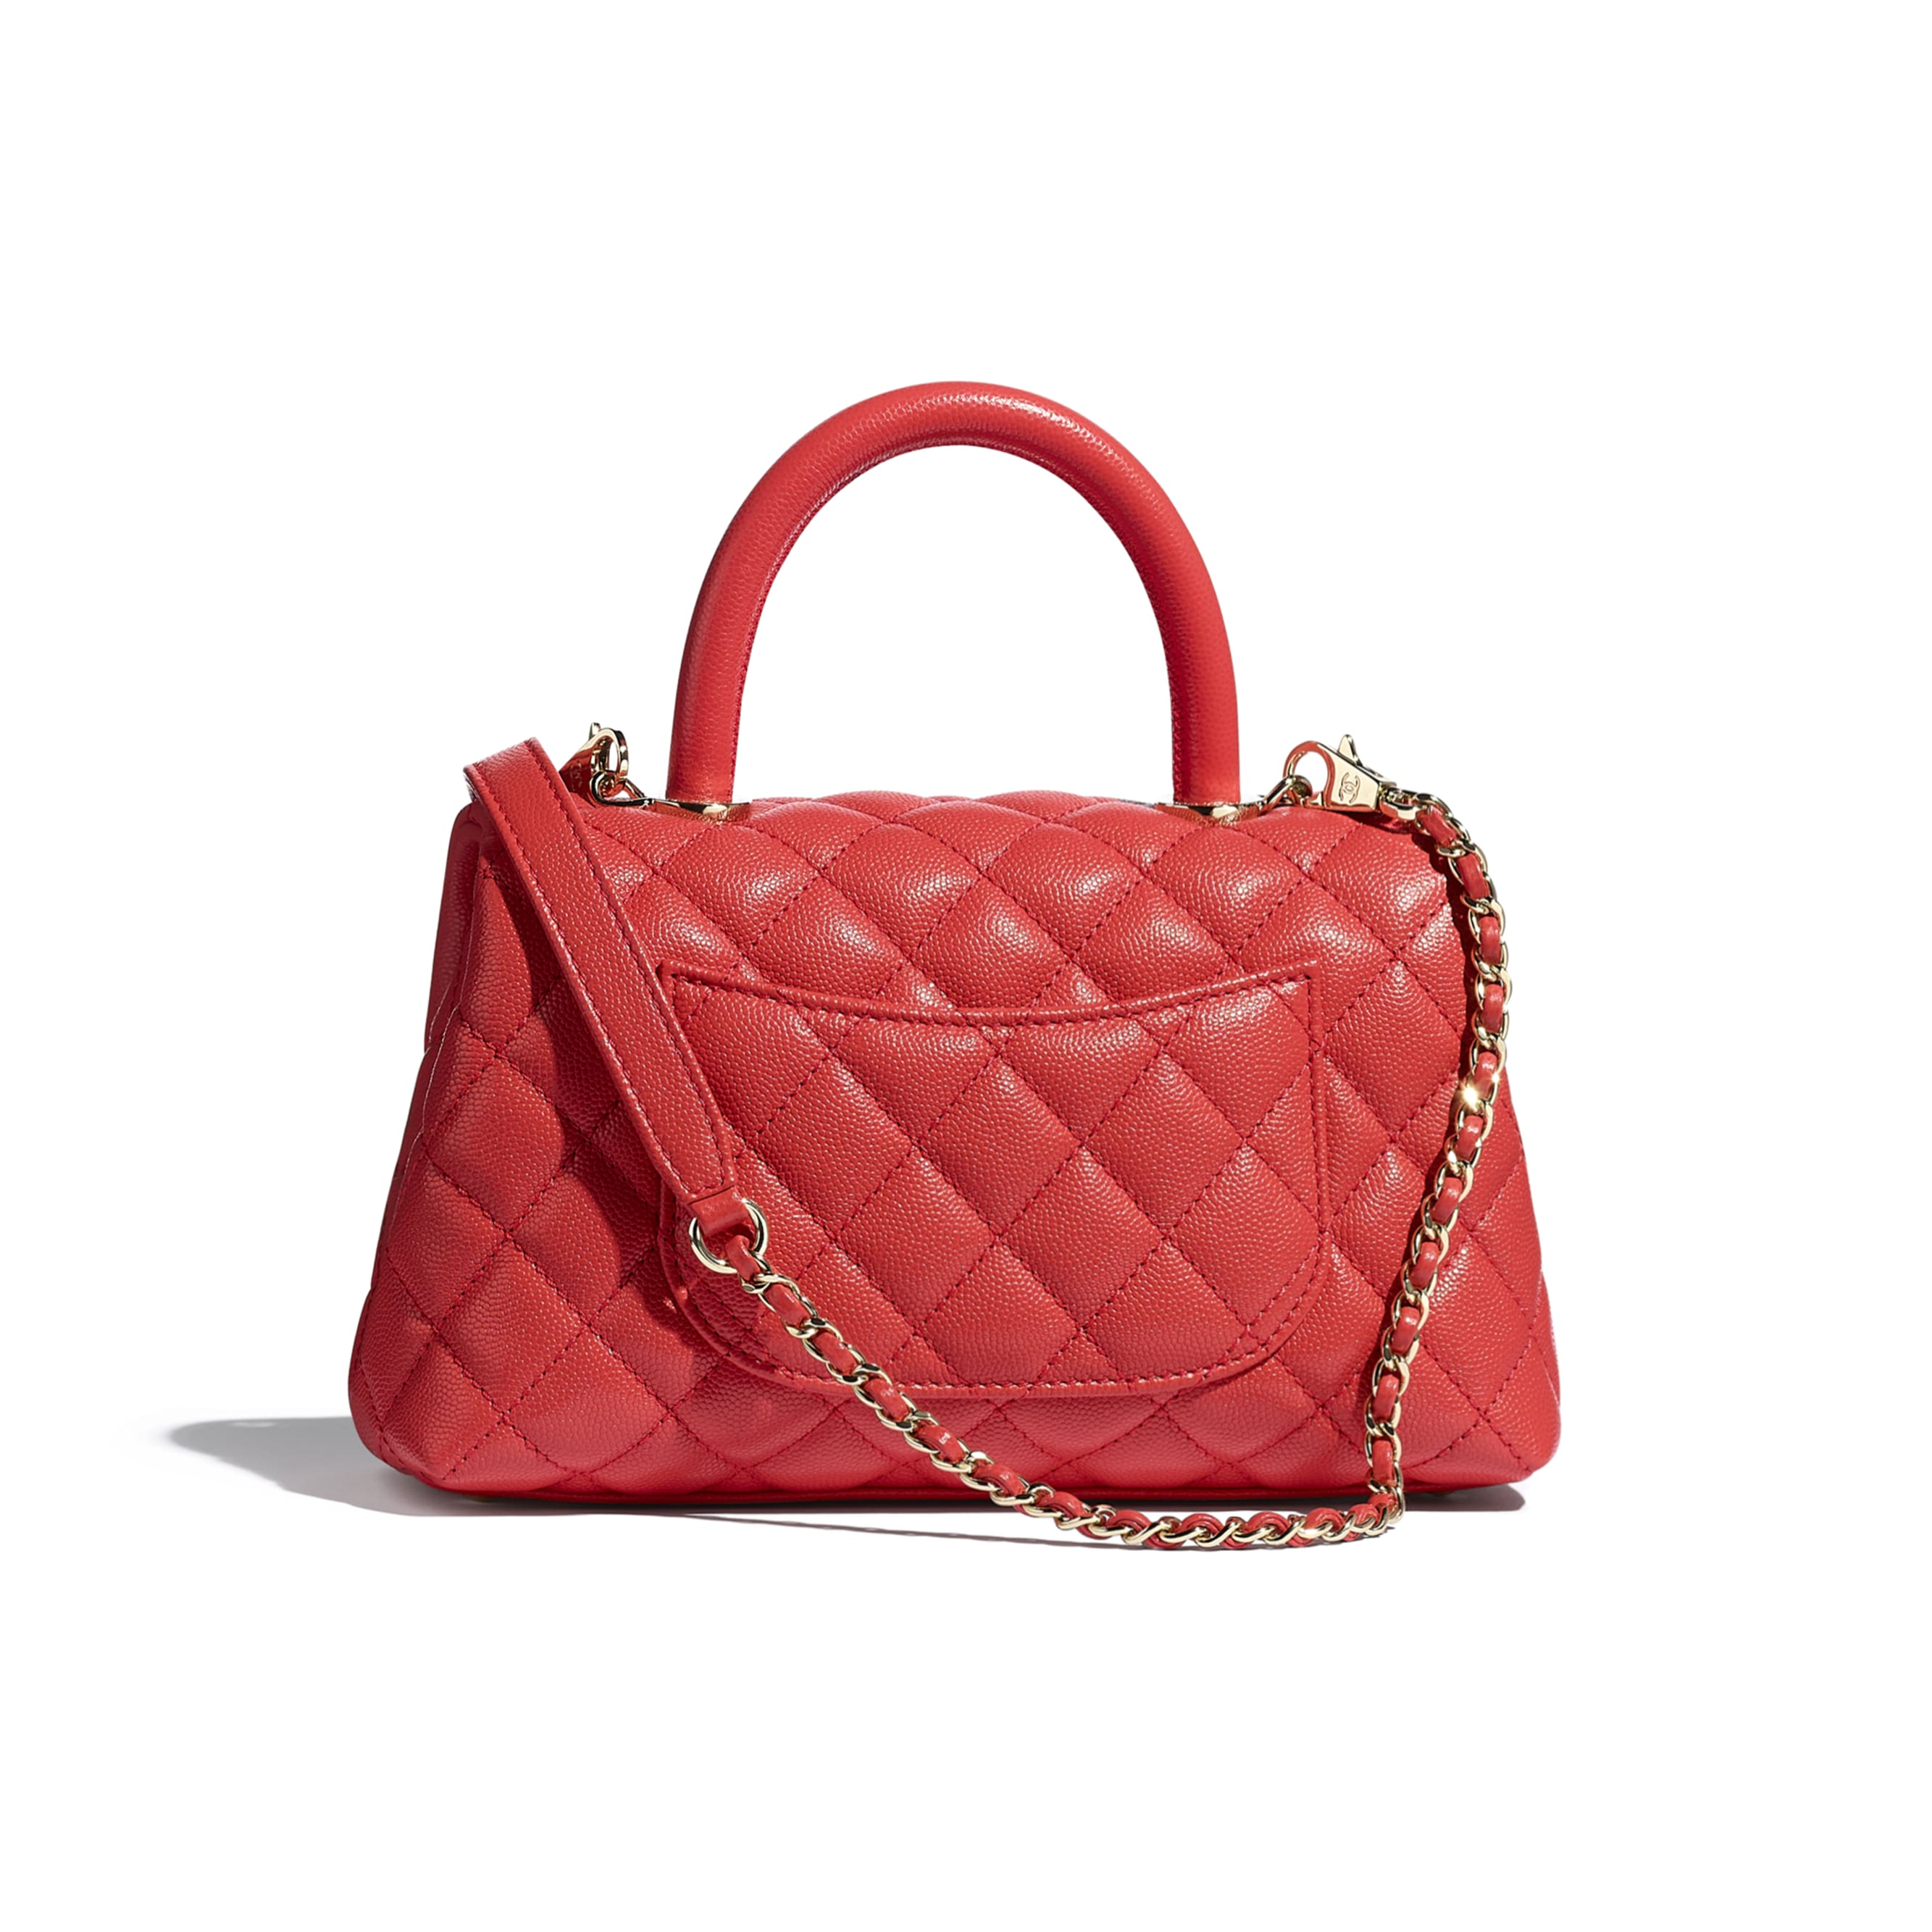 Flap Bag With Top Handle - Red - Grained Calfskin & Gold-Tone Metal - CHANEL - Alternative view - see standard sized version